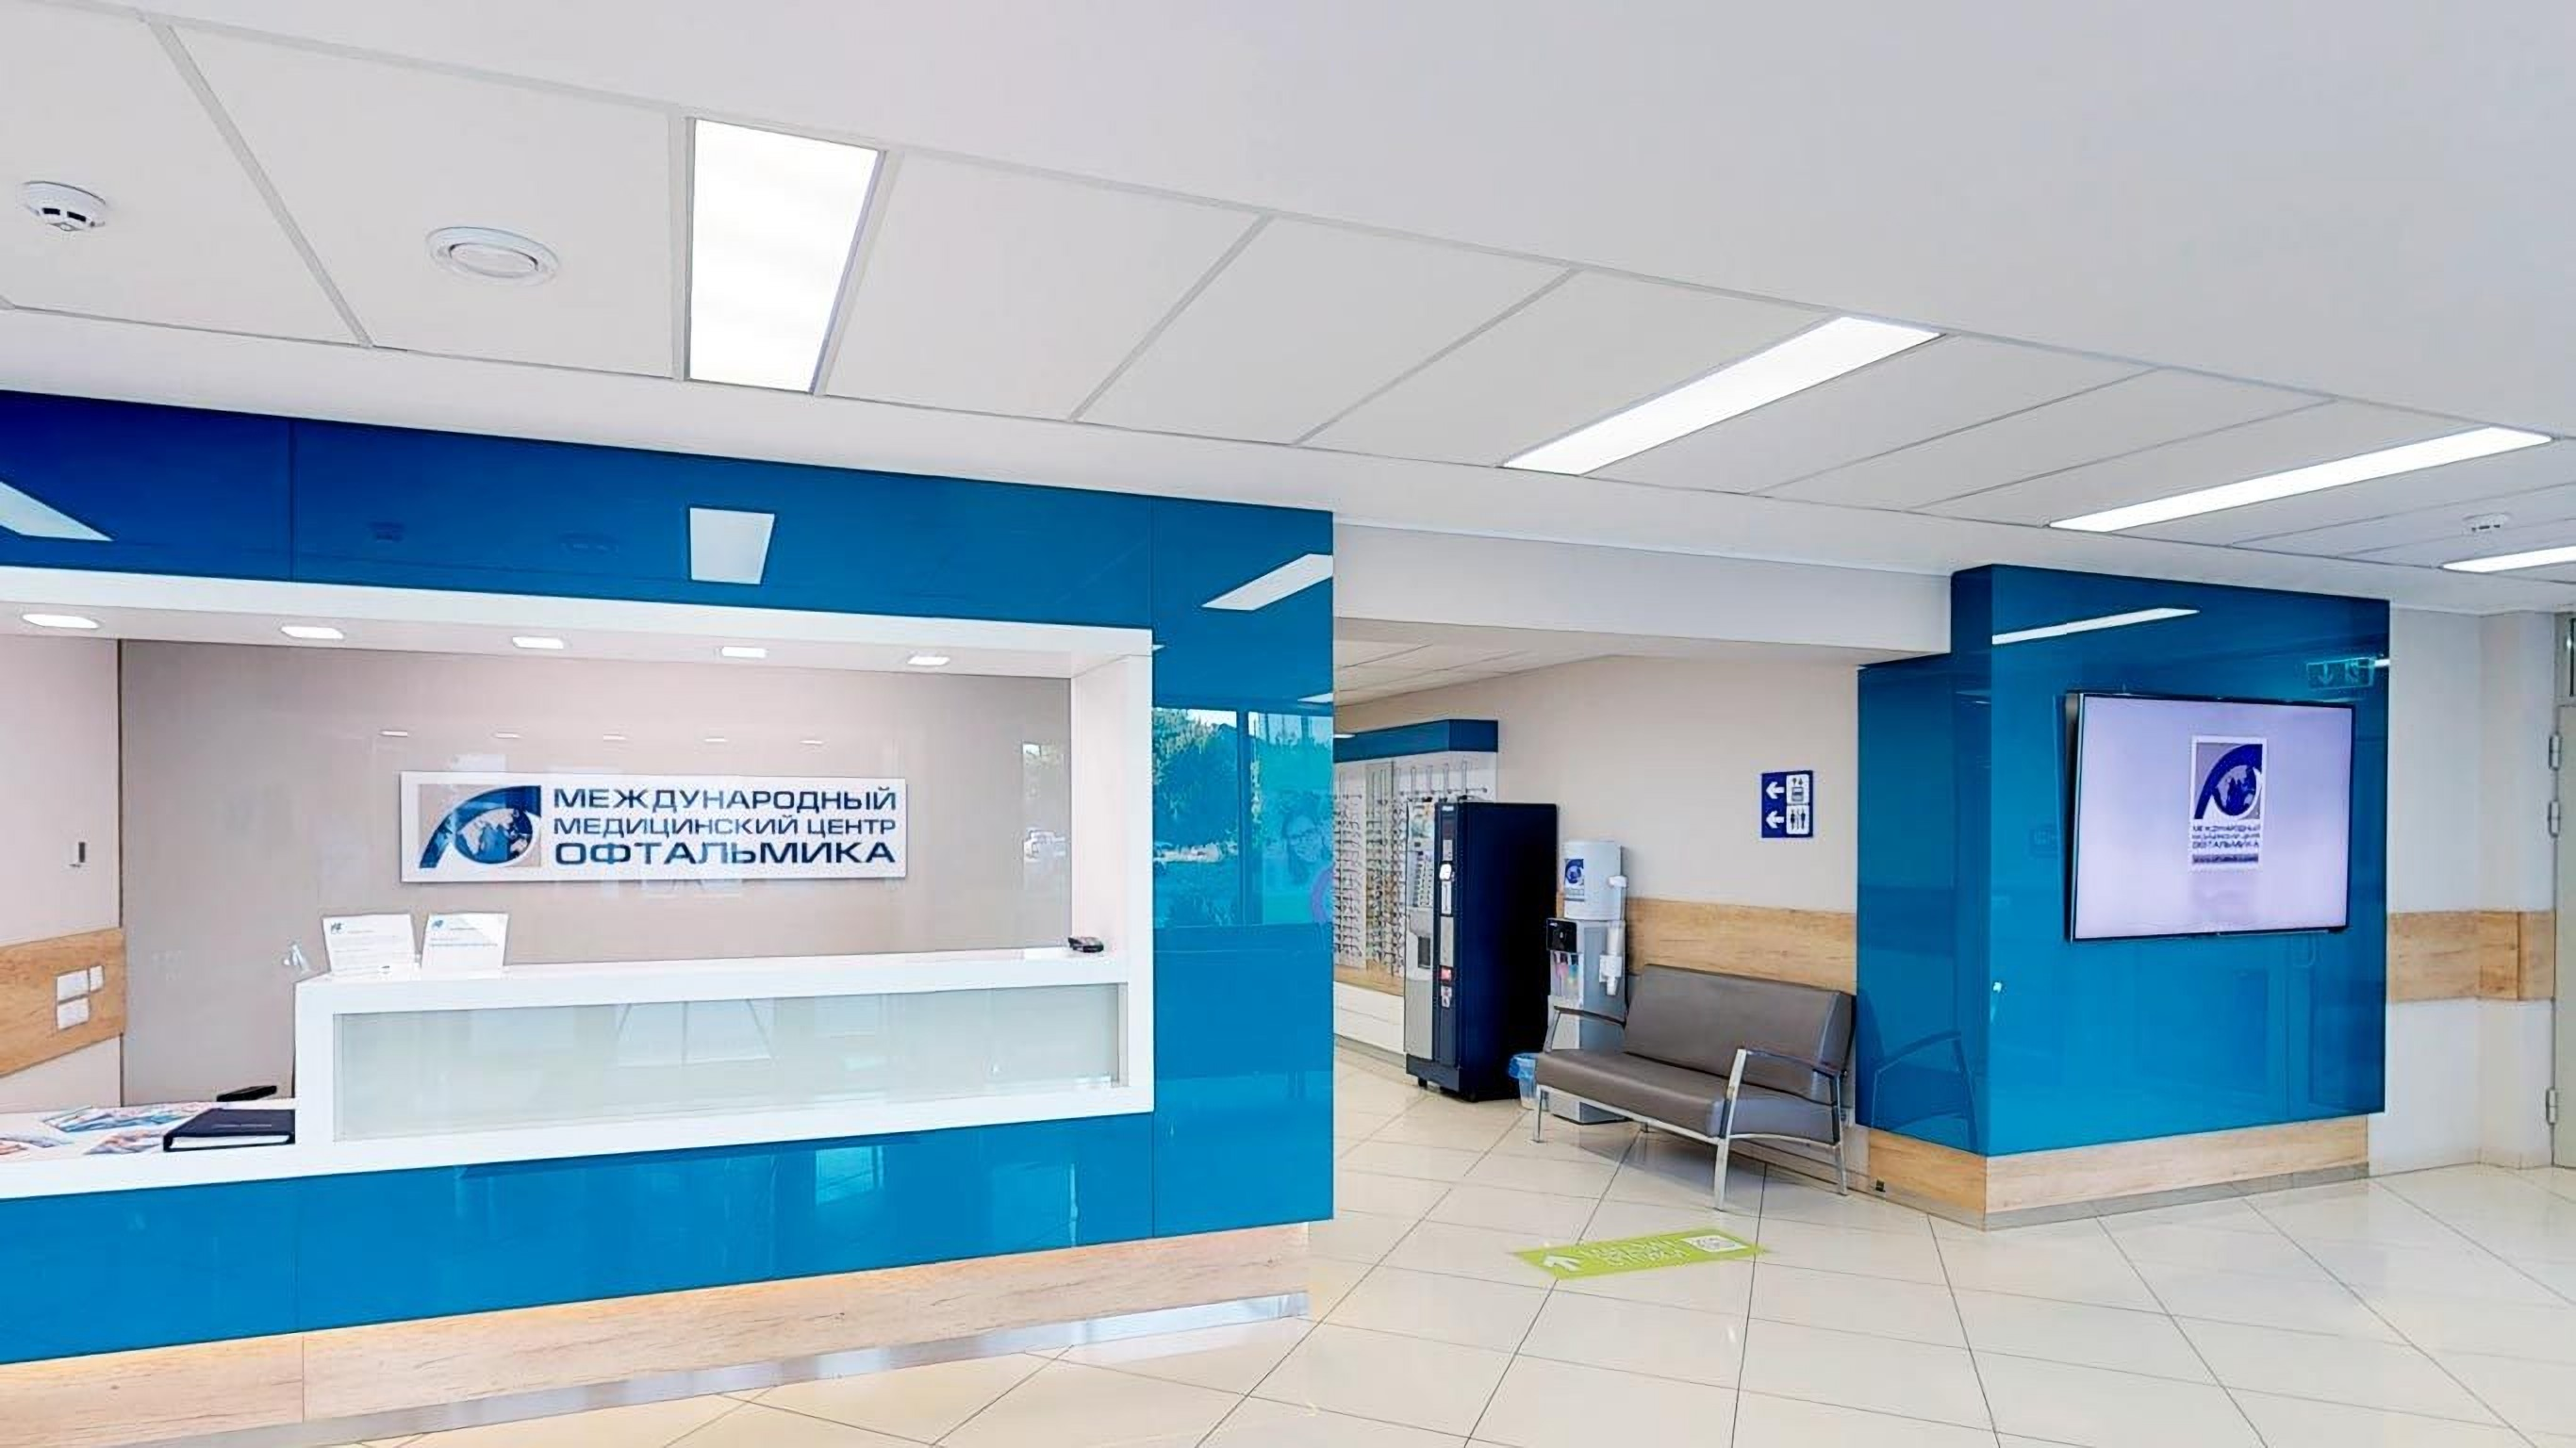 Reception of the International Medical Center Ophthalmic in Kharkov